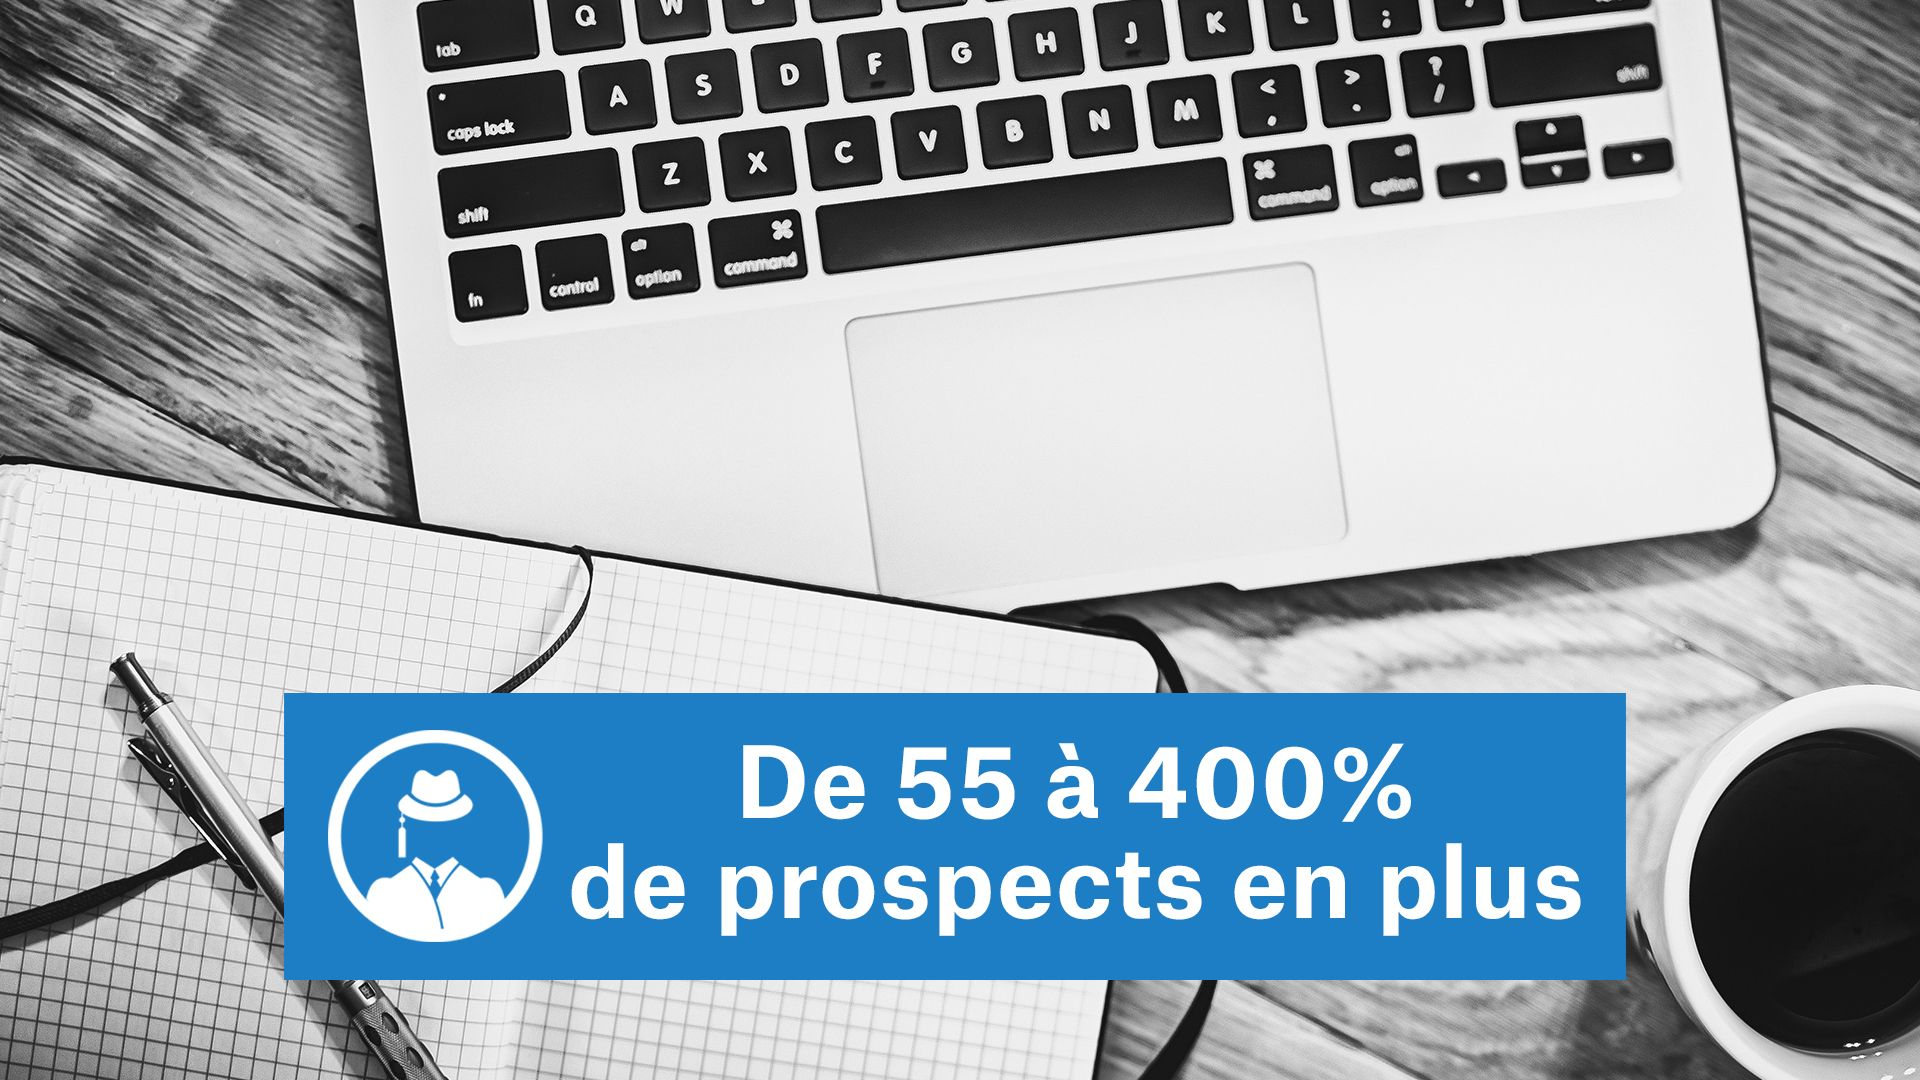 De 55 à 400% de prospects en plus #GrowthHacking #WebMarketing #FormationGrowthHacking #CentreDeFormationFrance #TunnelAARRR #AARRR #SocialMedia #CommunityManagement #SEO #MarketingDigital #SiteWeb